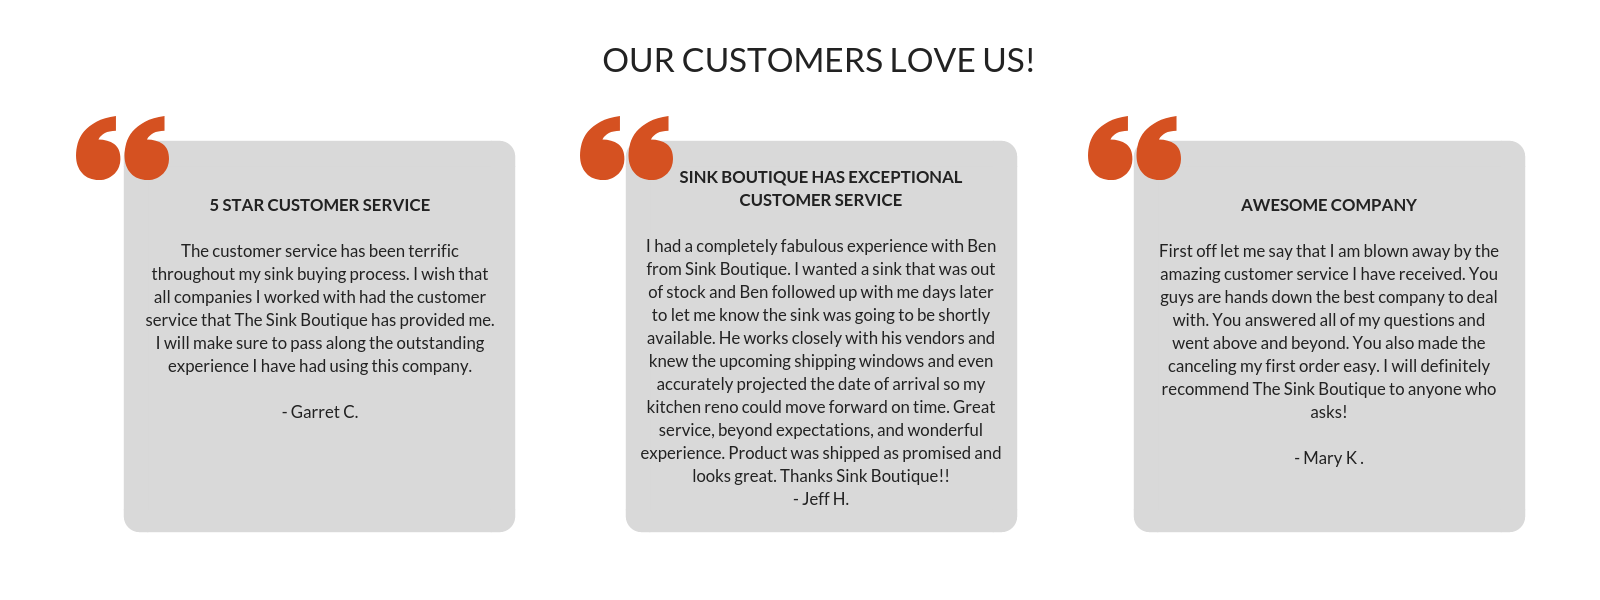 Our Customer Love Us | The Sink Boutique